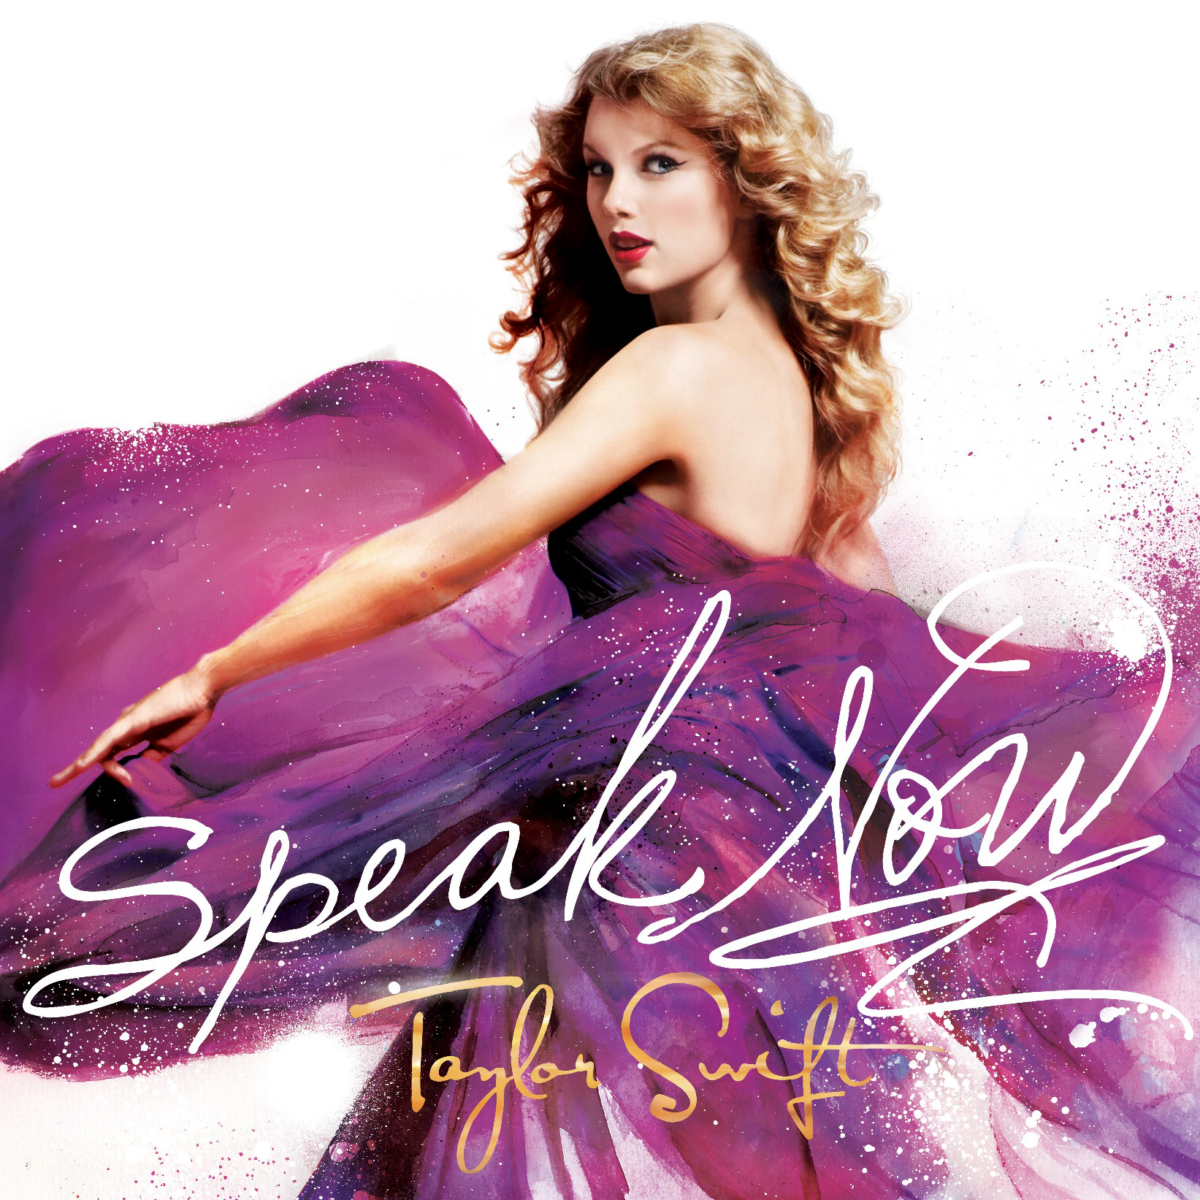 Taylor Swift Girl Power Lessons I Speak Now